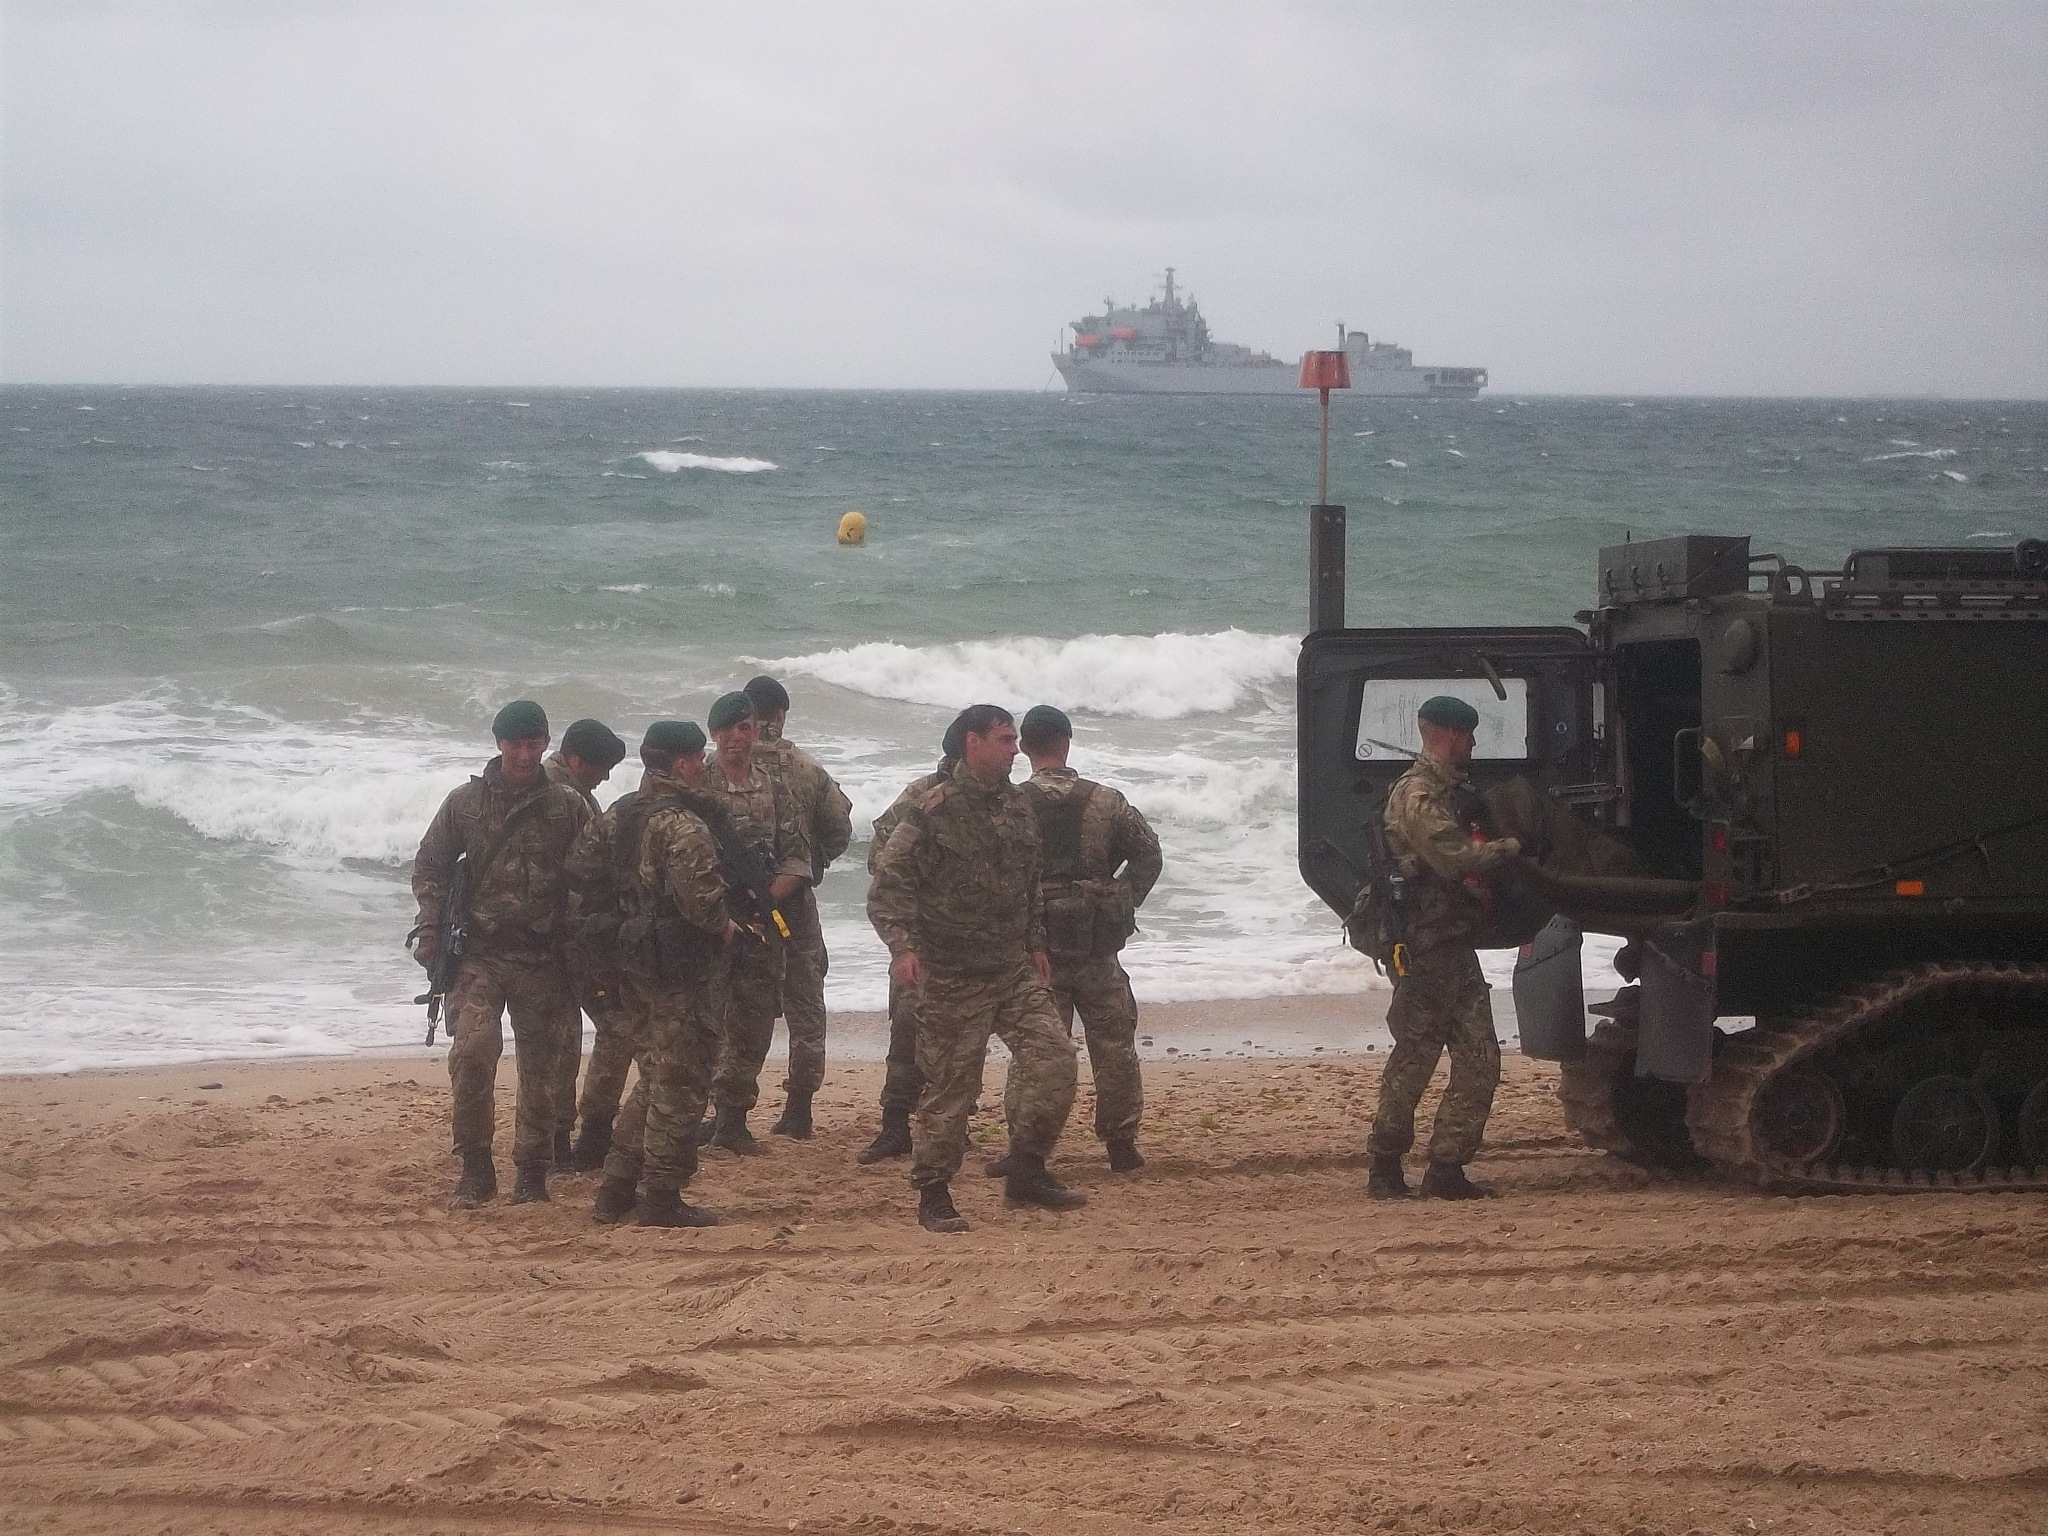 royal marines on bournemouth beach by traceybiddlecombe3666